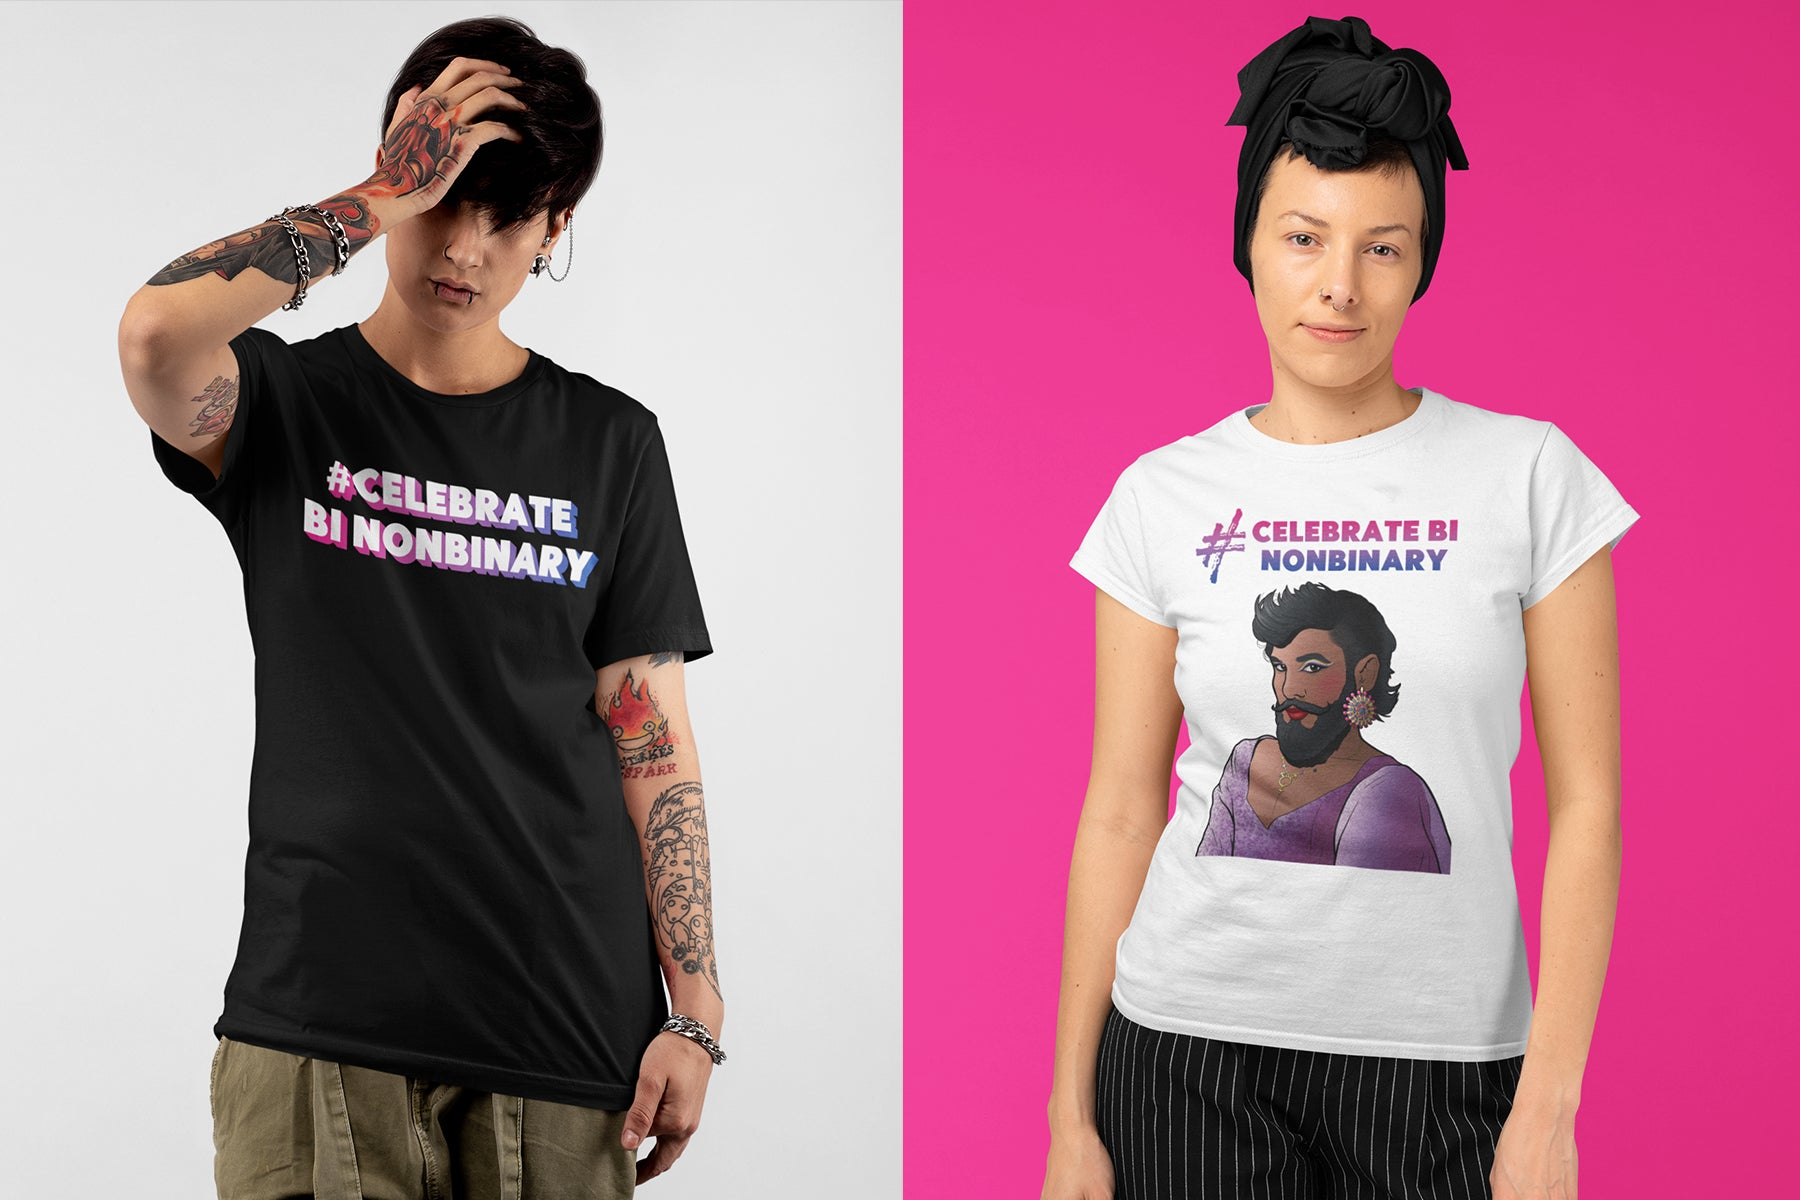 #CelebrateBiNonBinary Shirts